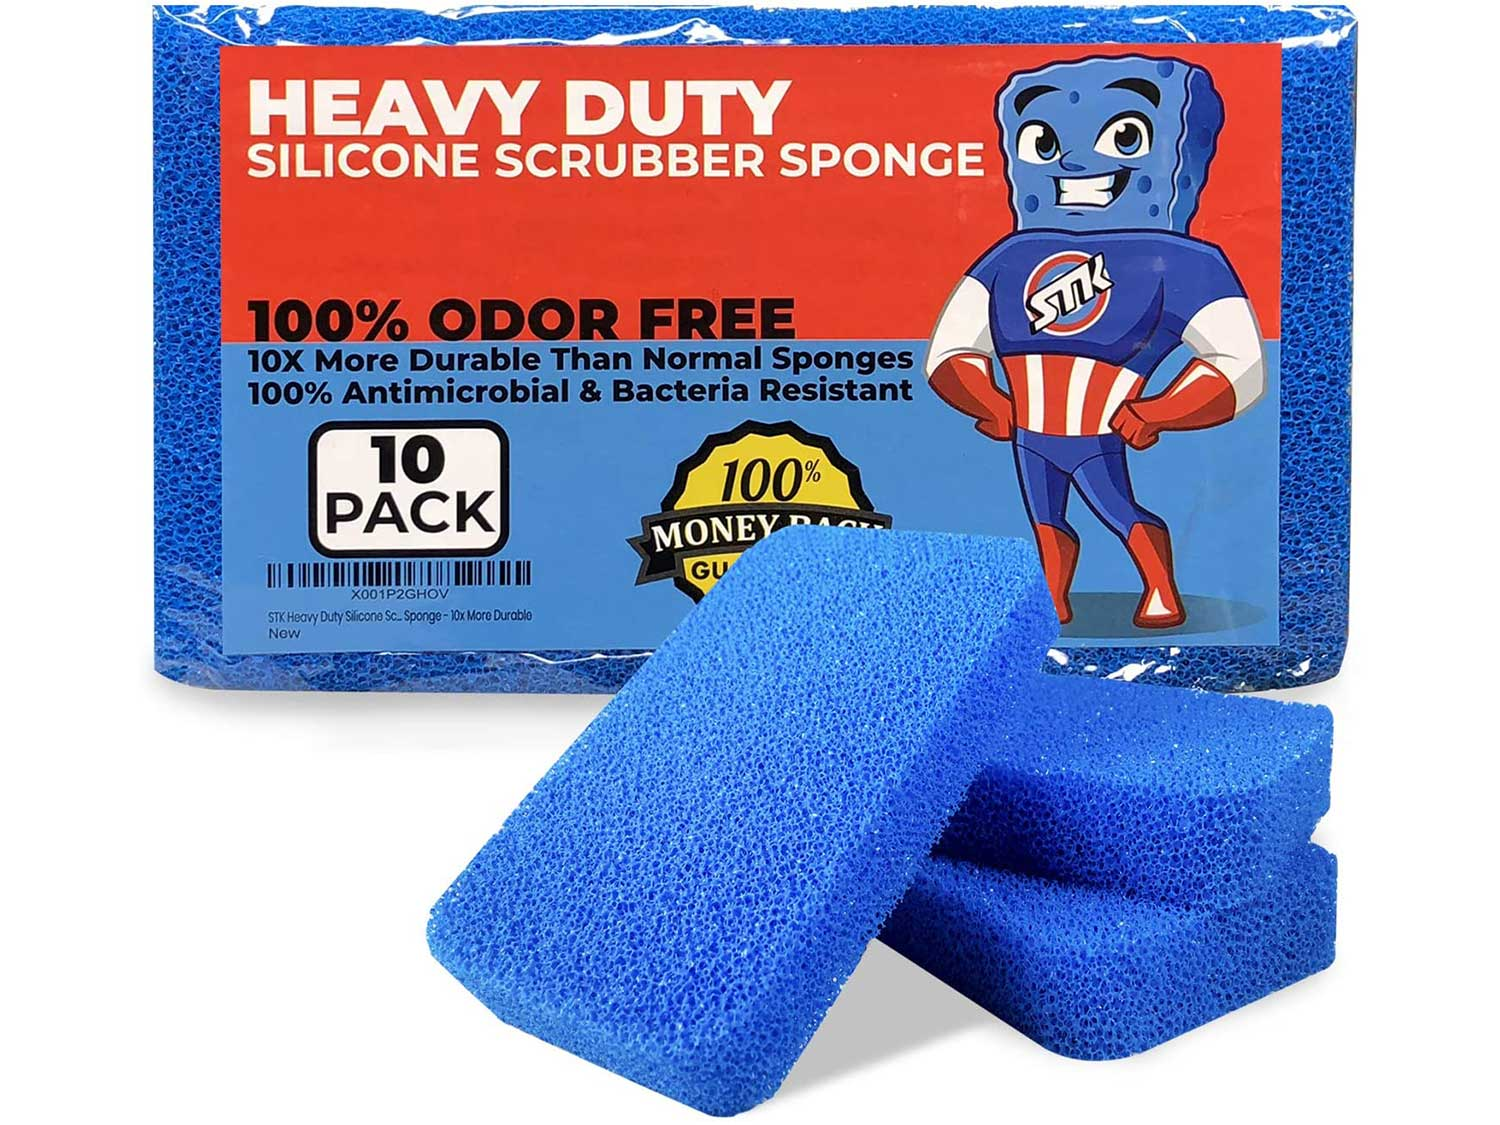 STK Heavy Duty Silicone Scrubber Sponges (10 Pack) - Modern Antimicrobial Kitchen Sponges - 100% Mold Mildew and Bacteria Resistant - Zero Smell Technology